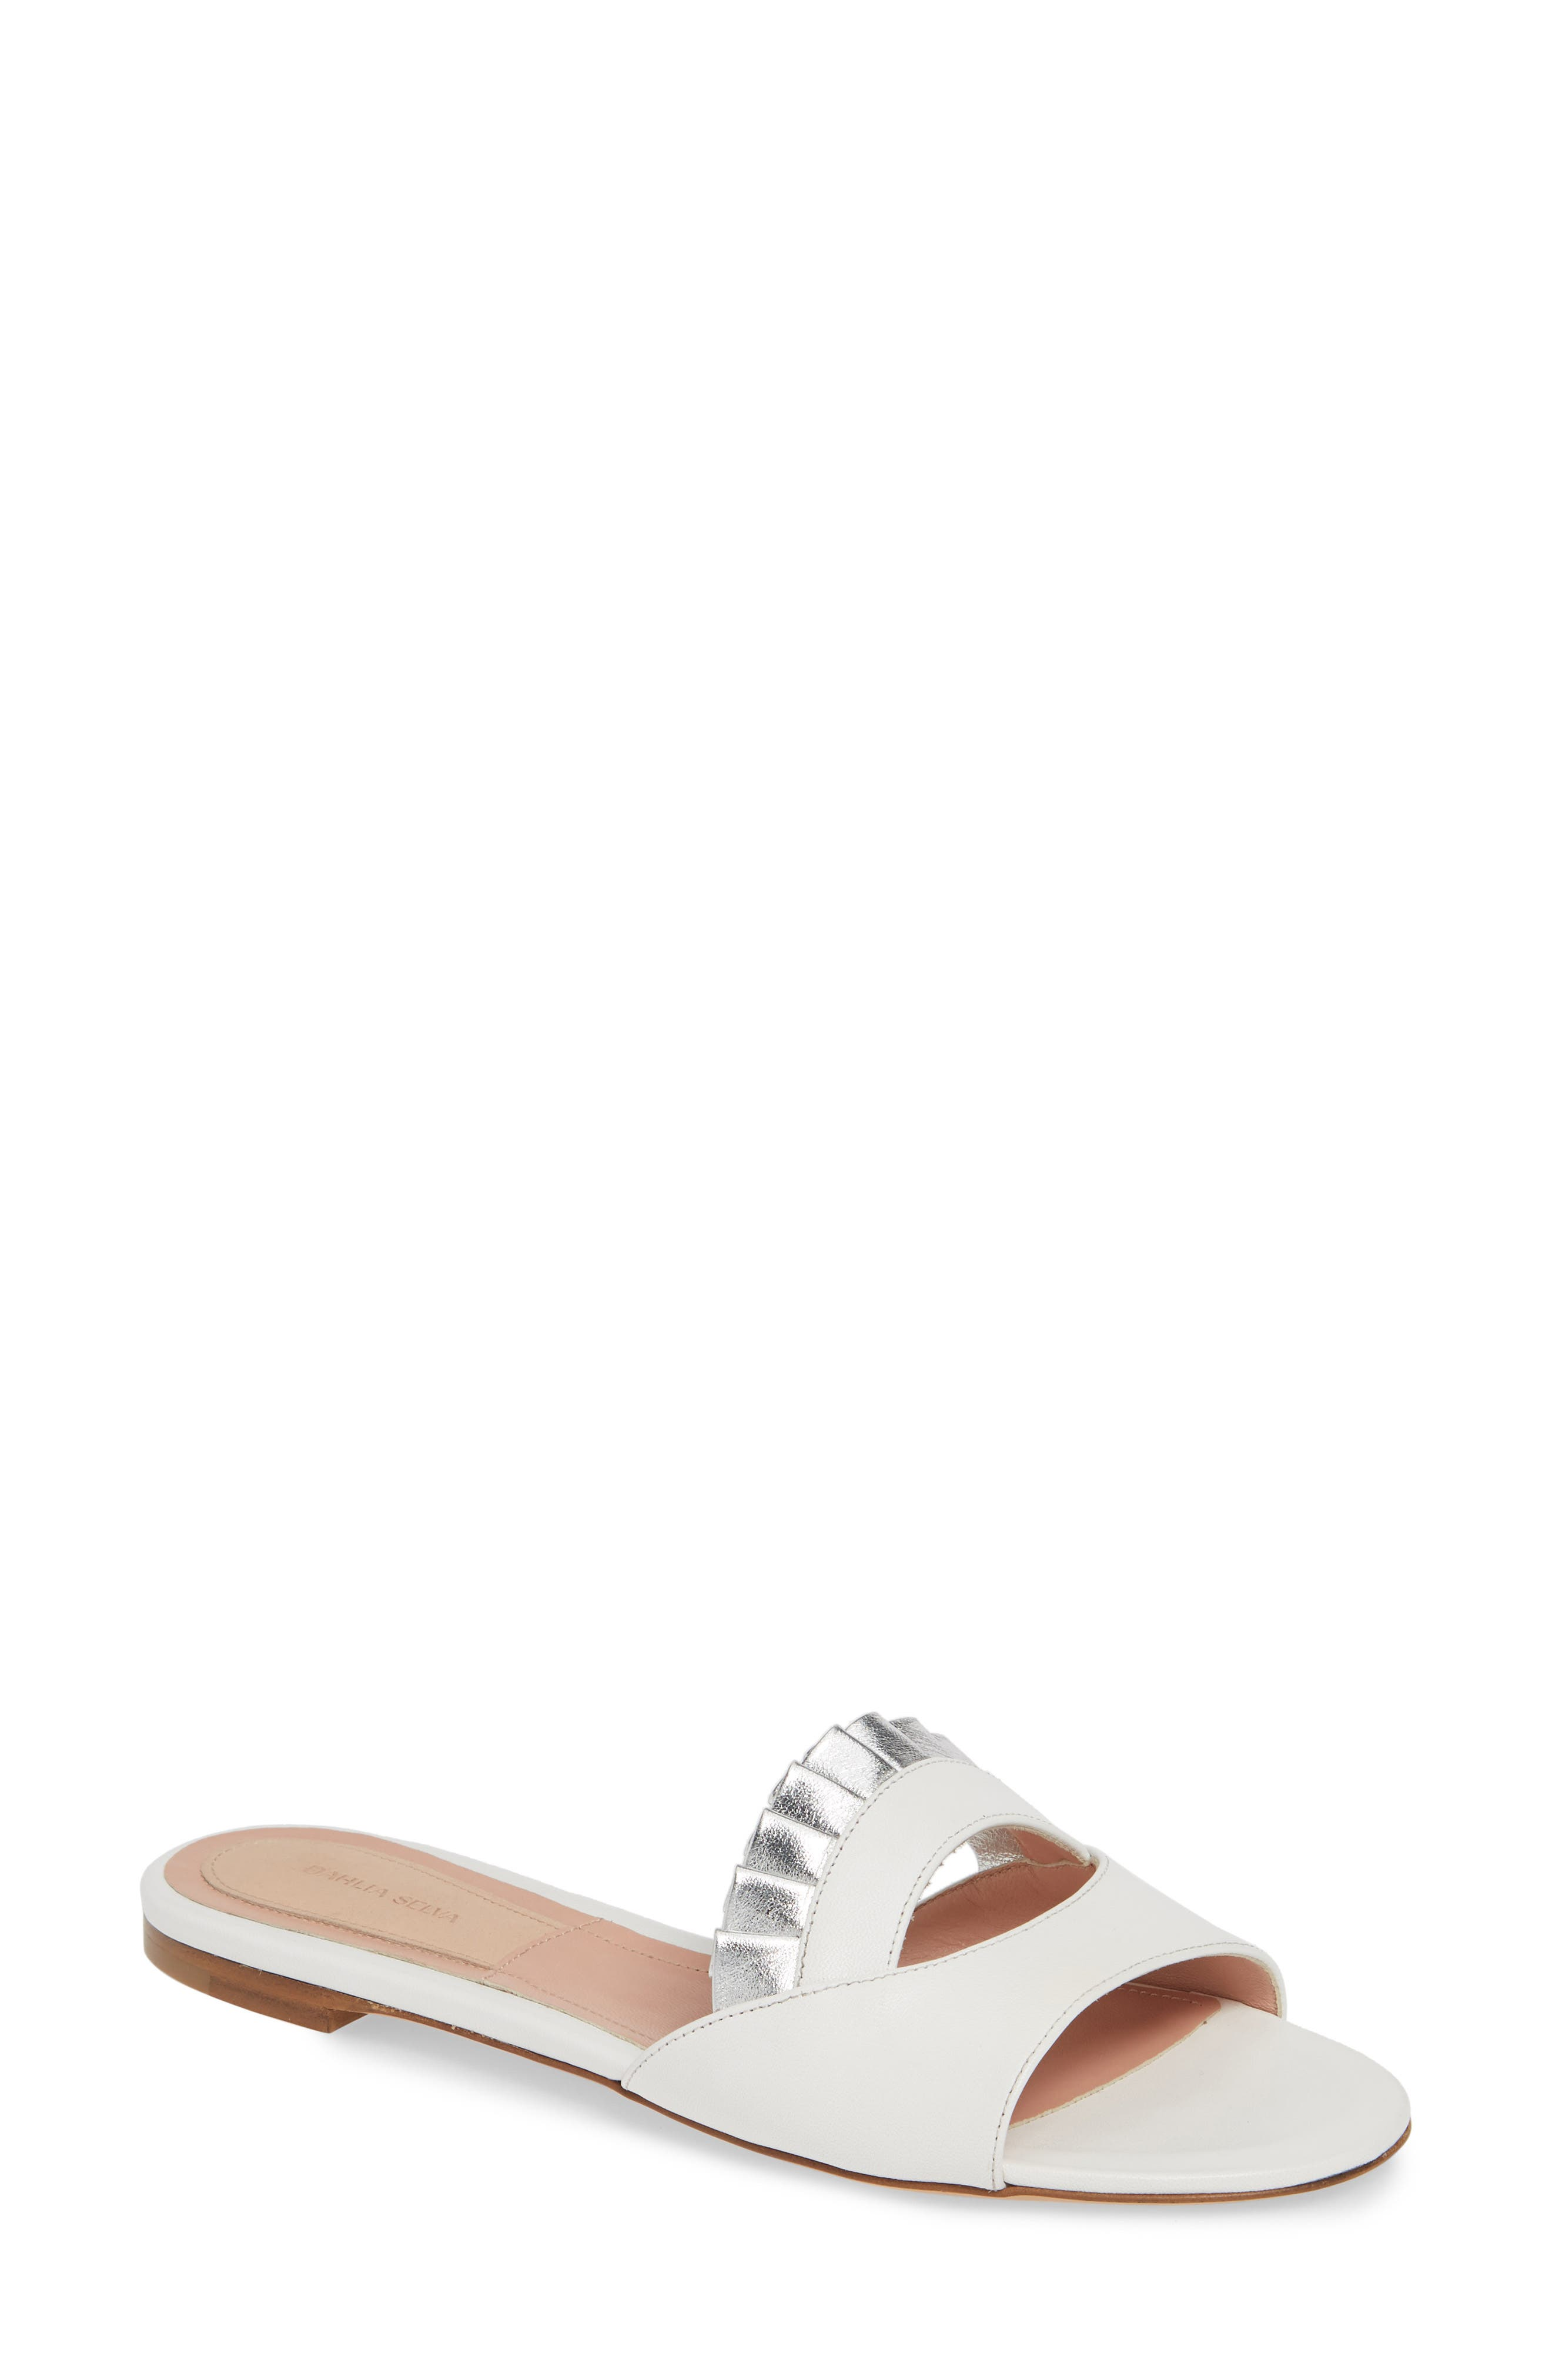 Sandals Sandals For WomenNordstrom Low1–2Designer For WomenNordstrom Low1–2Designer For Low1–2Designer WomenNordstrom Sandals f76yYbg